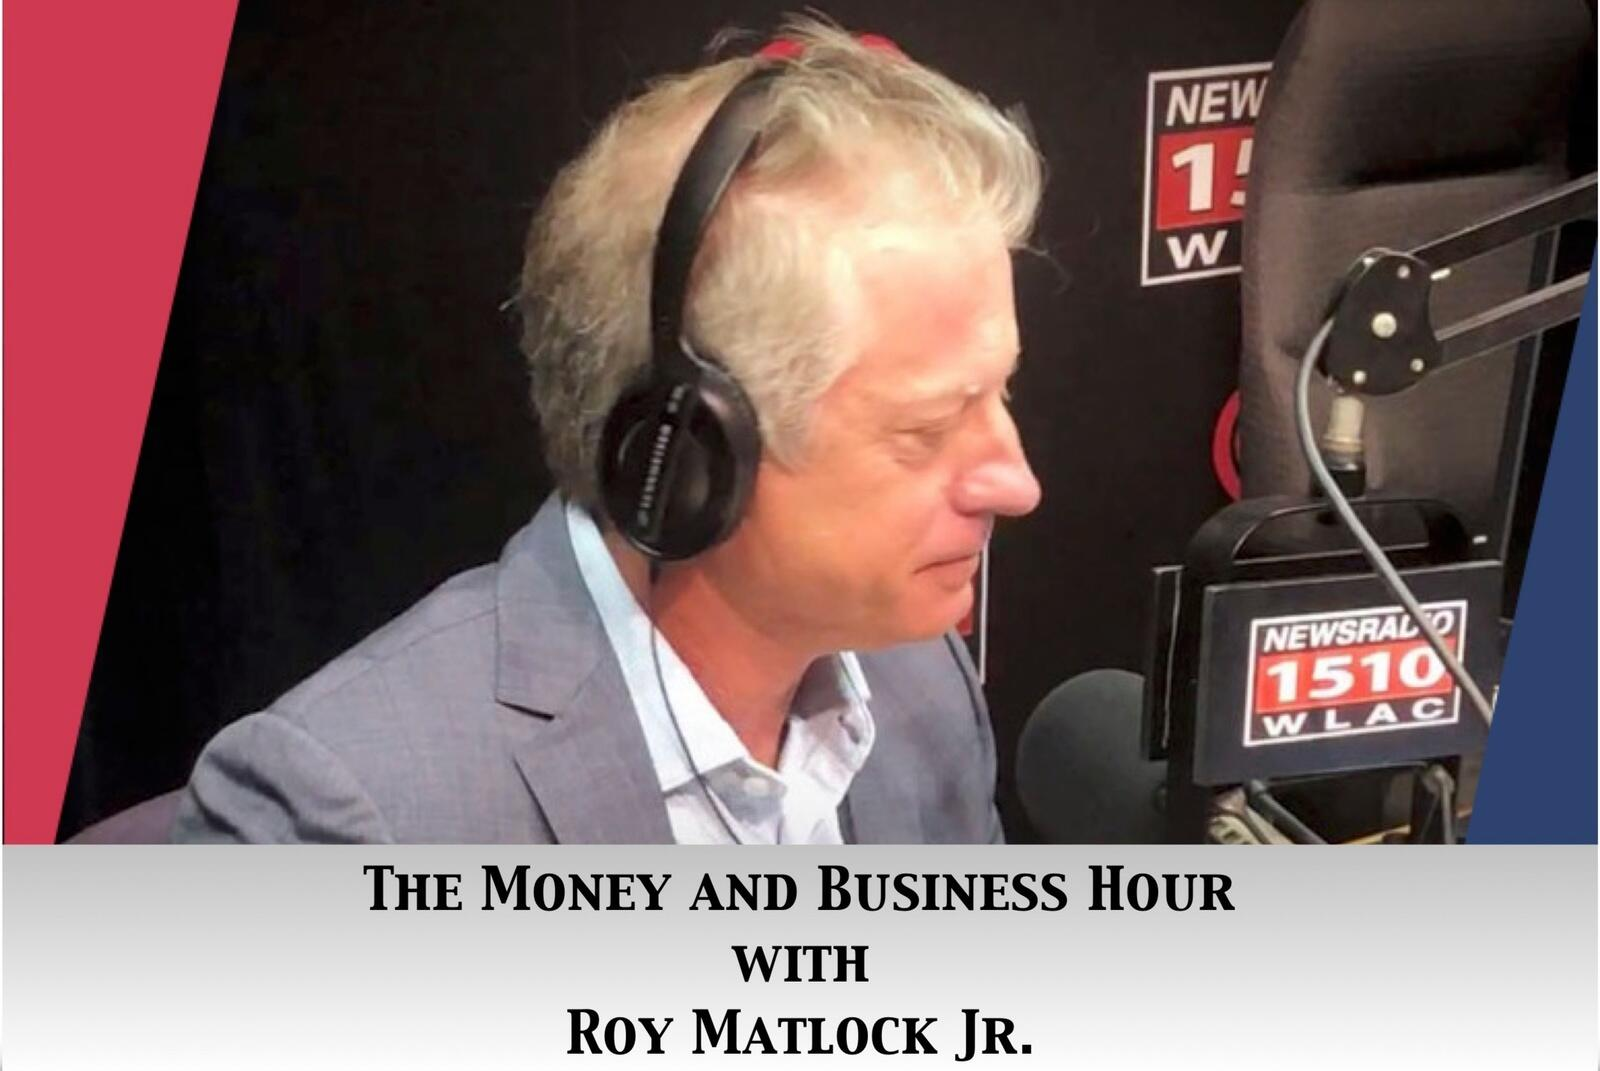 54: 54 - The Fundamentals of the Financial House